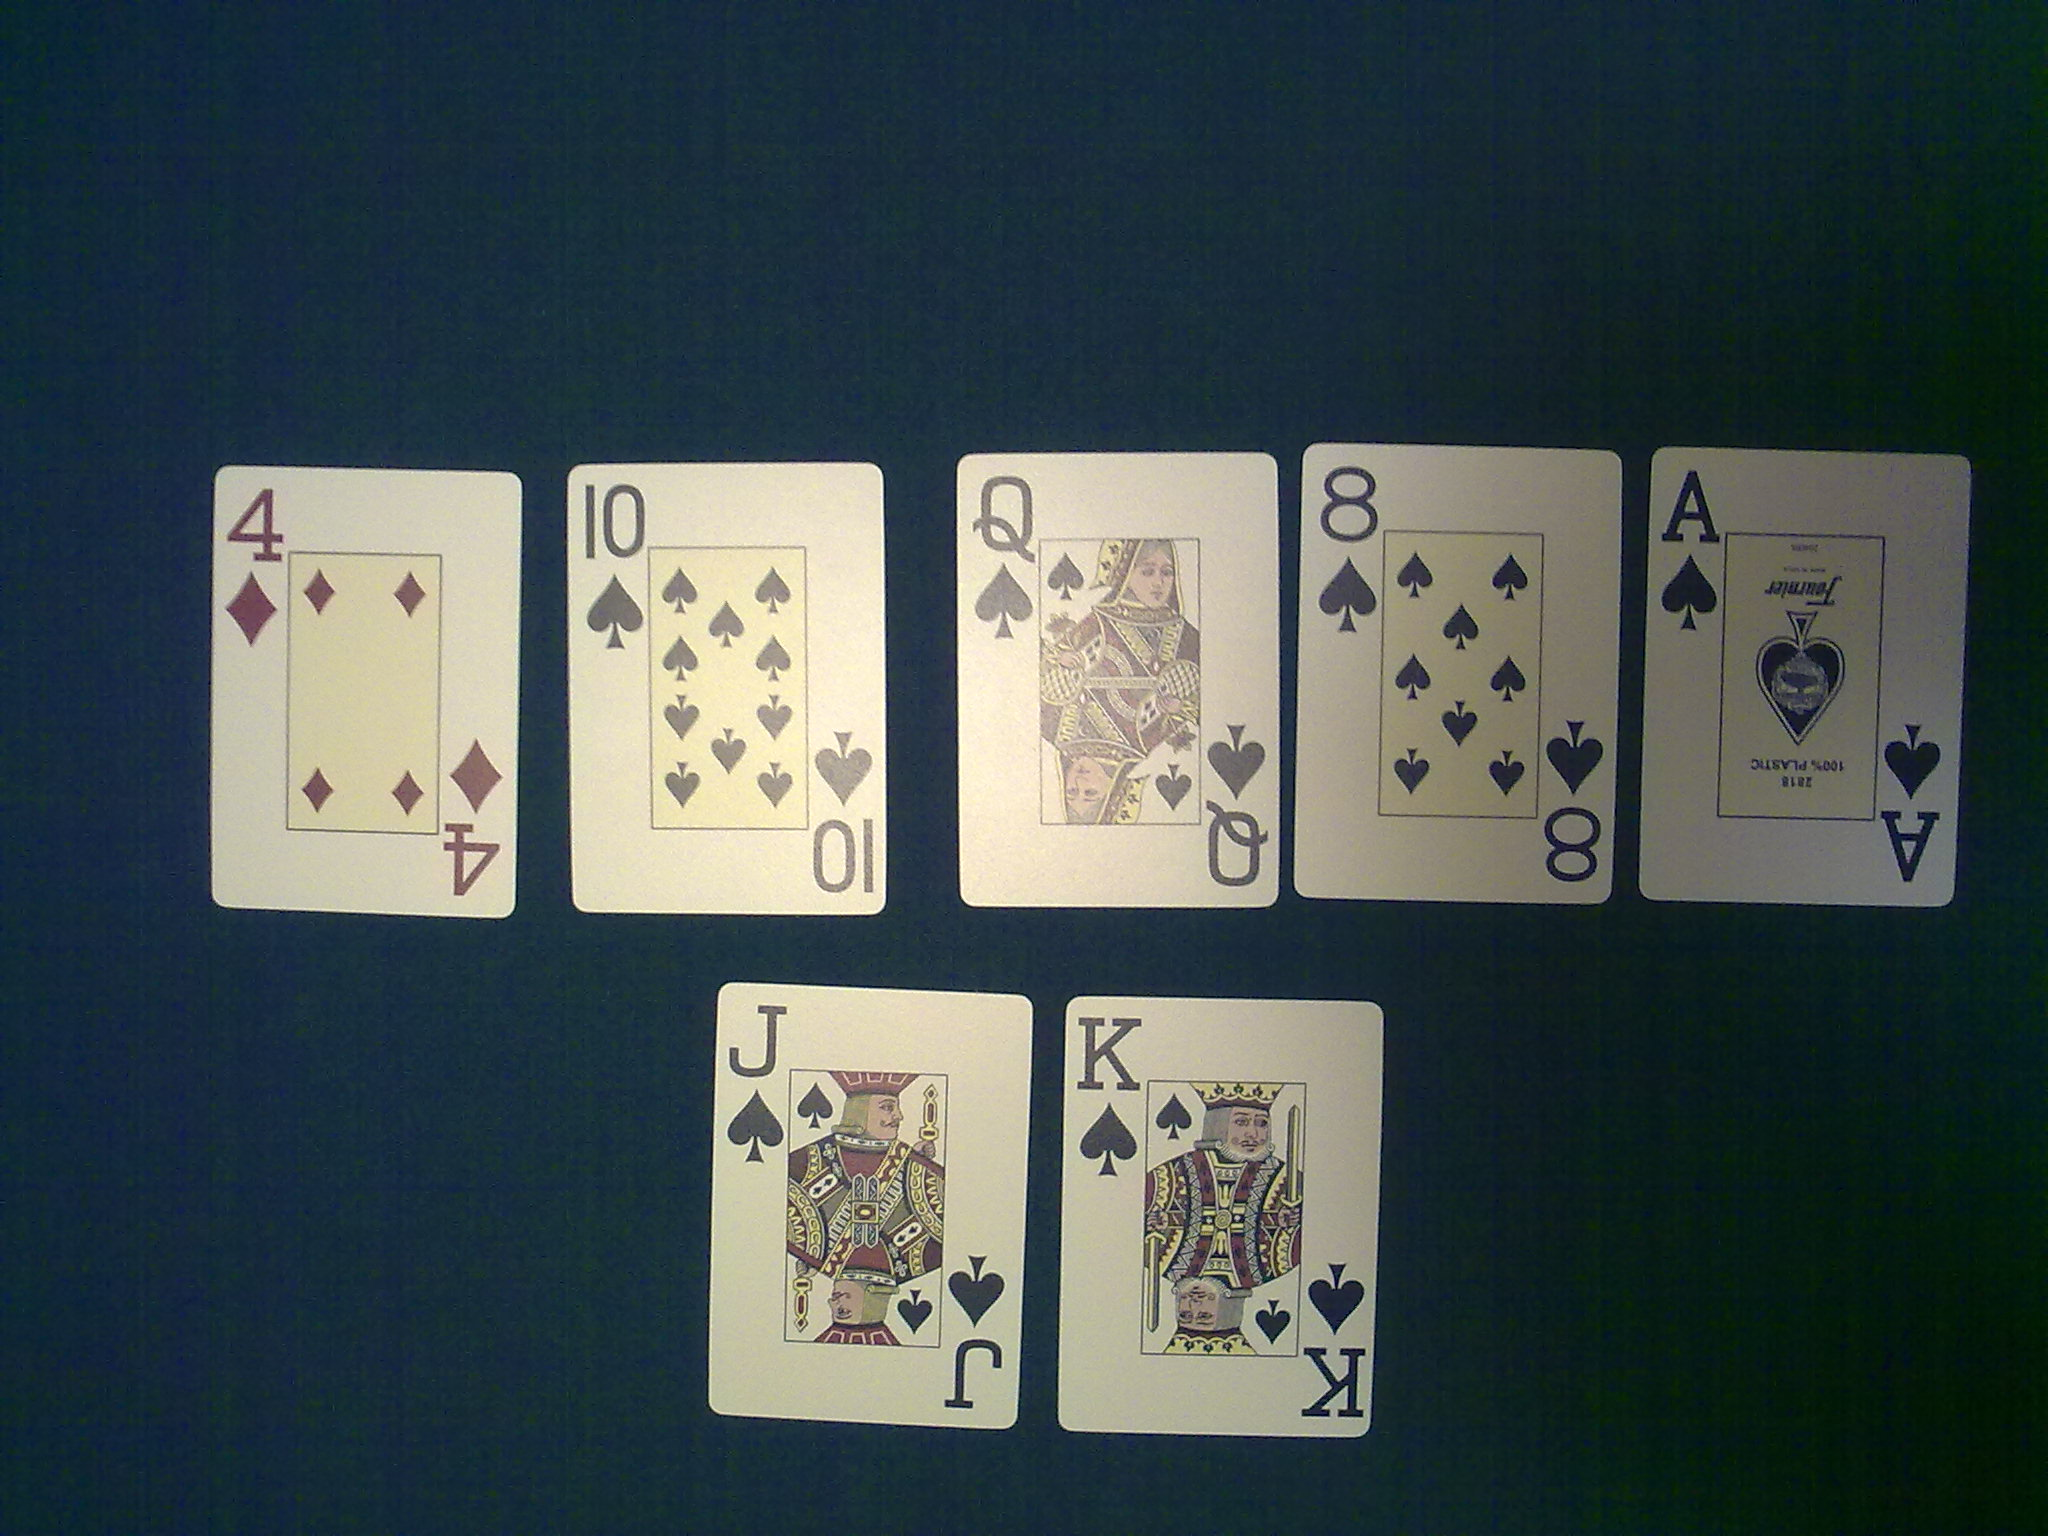 http://s.cheche.free.fr/Poker/Royal_aurel.jpg